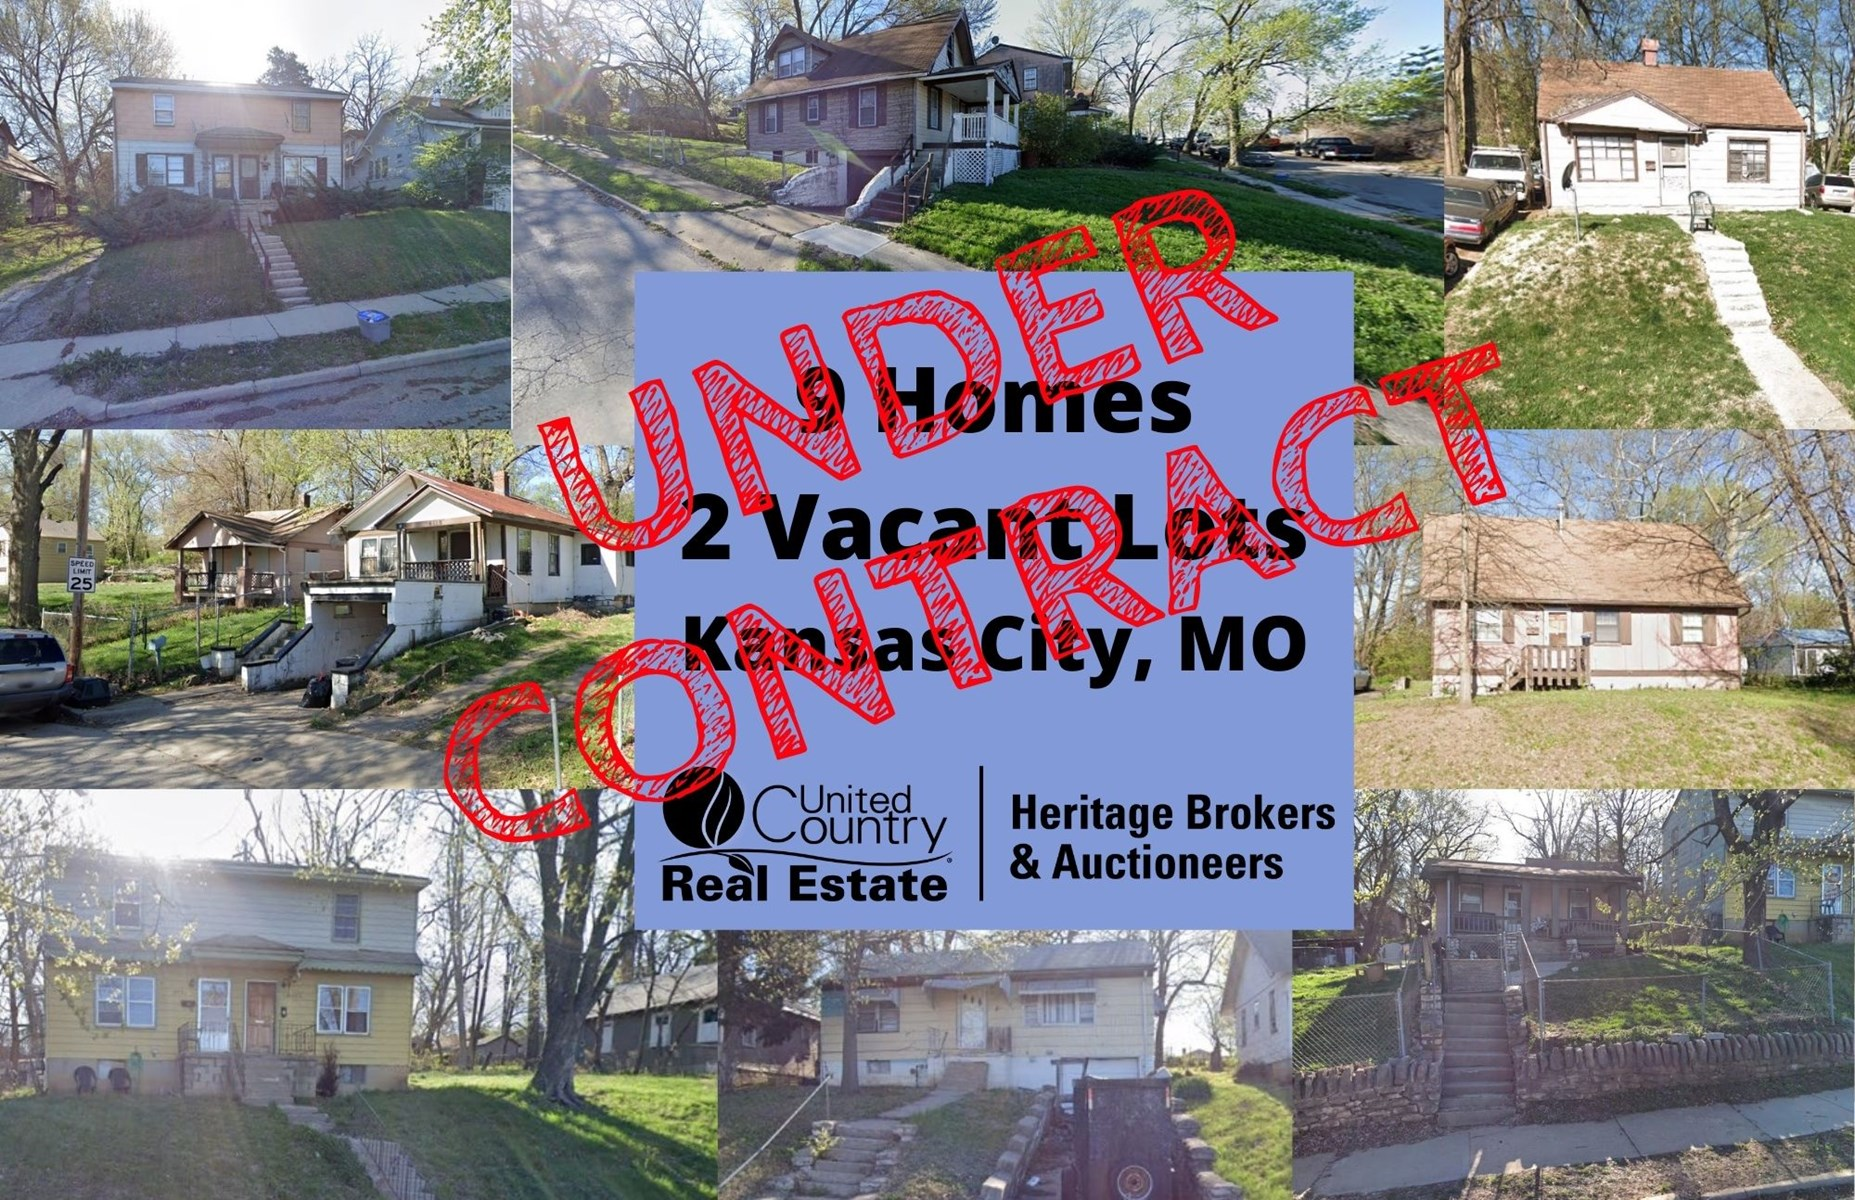 Investment Package 9 Homes and 2 Vacant Lots in KC MO